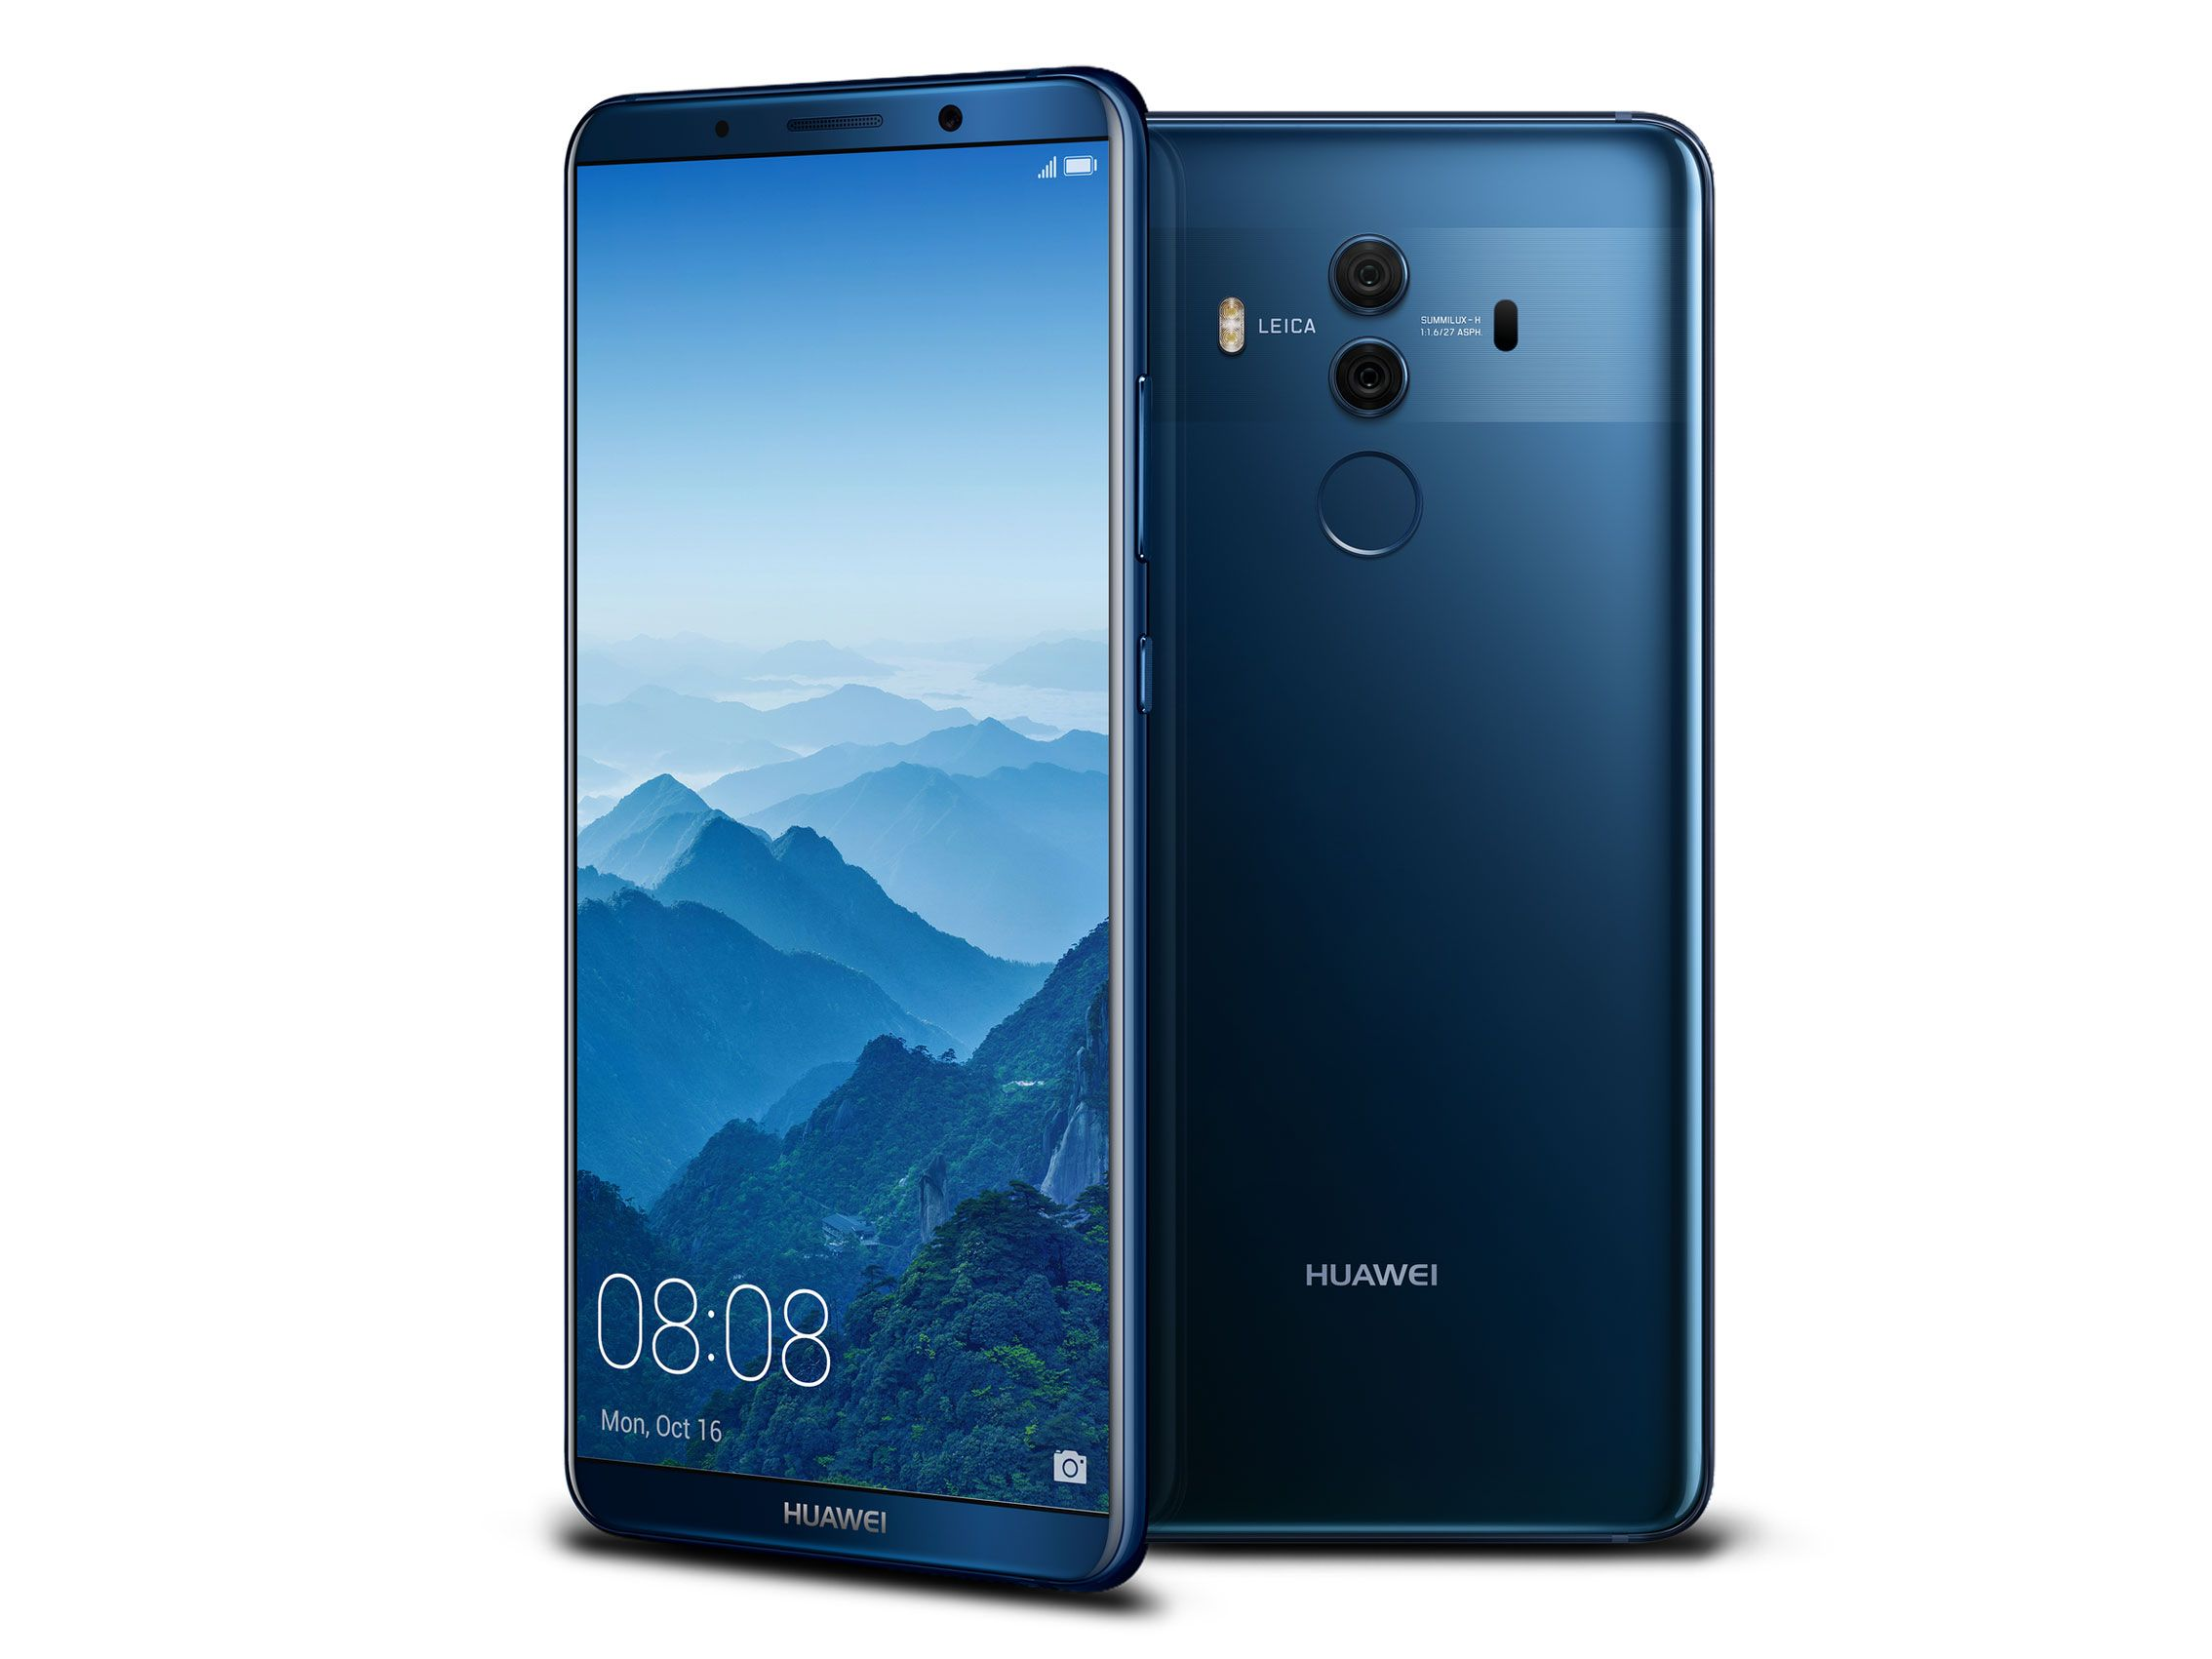 How To Enable App Drawer on Huawei Mate 10 Pro Huawei